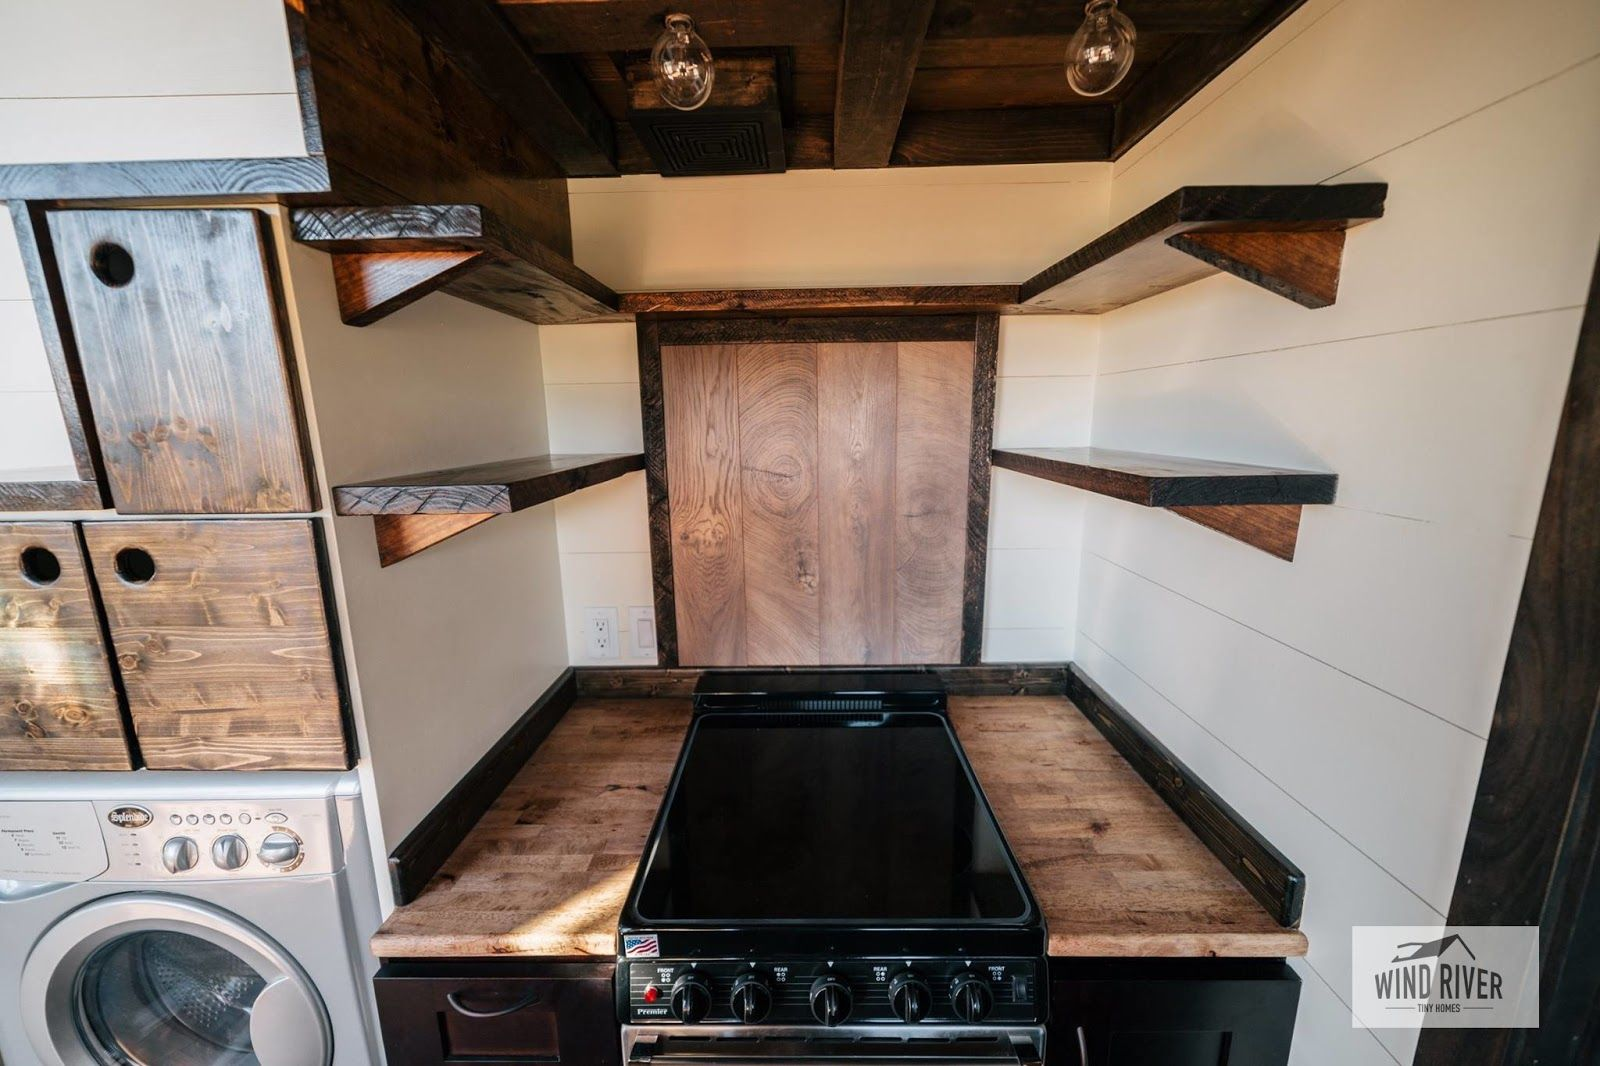 silhouette from wind river tiny homes outdoor kitchen outdoor kitchen design outdoor kitchen on outdoor kitchen on wheels id=57541